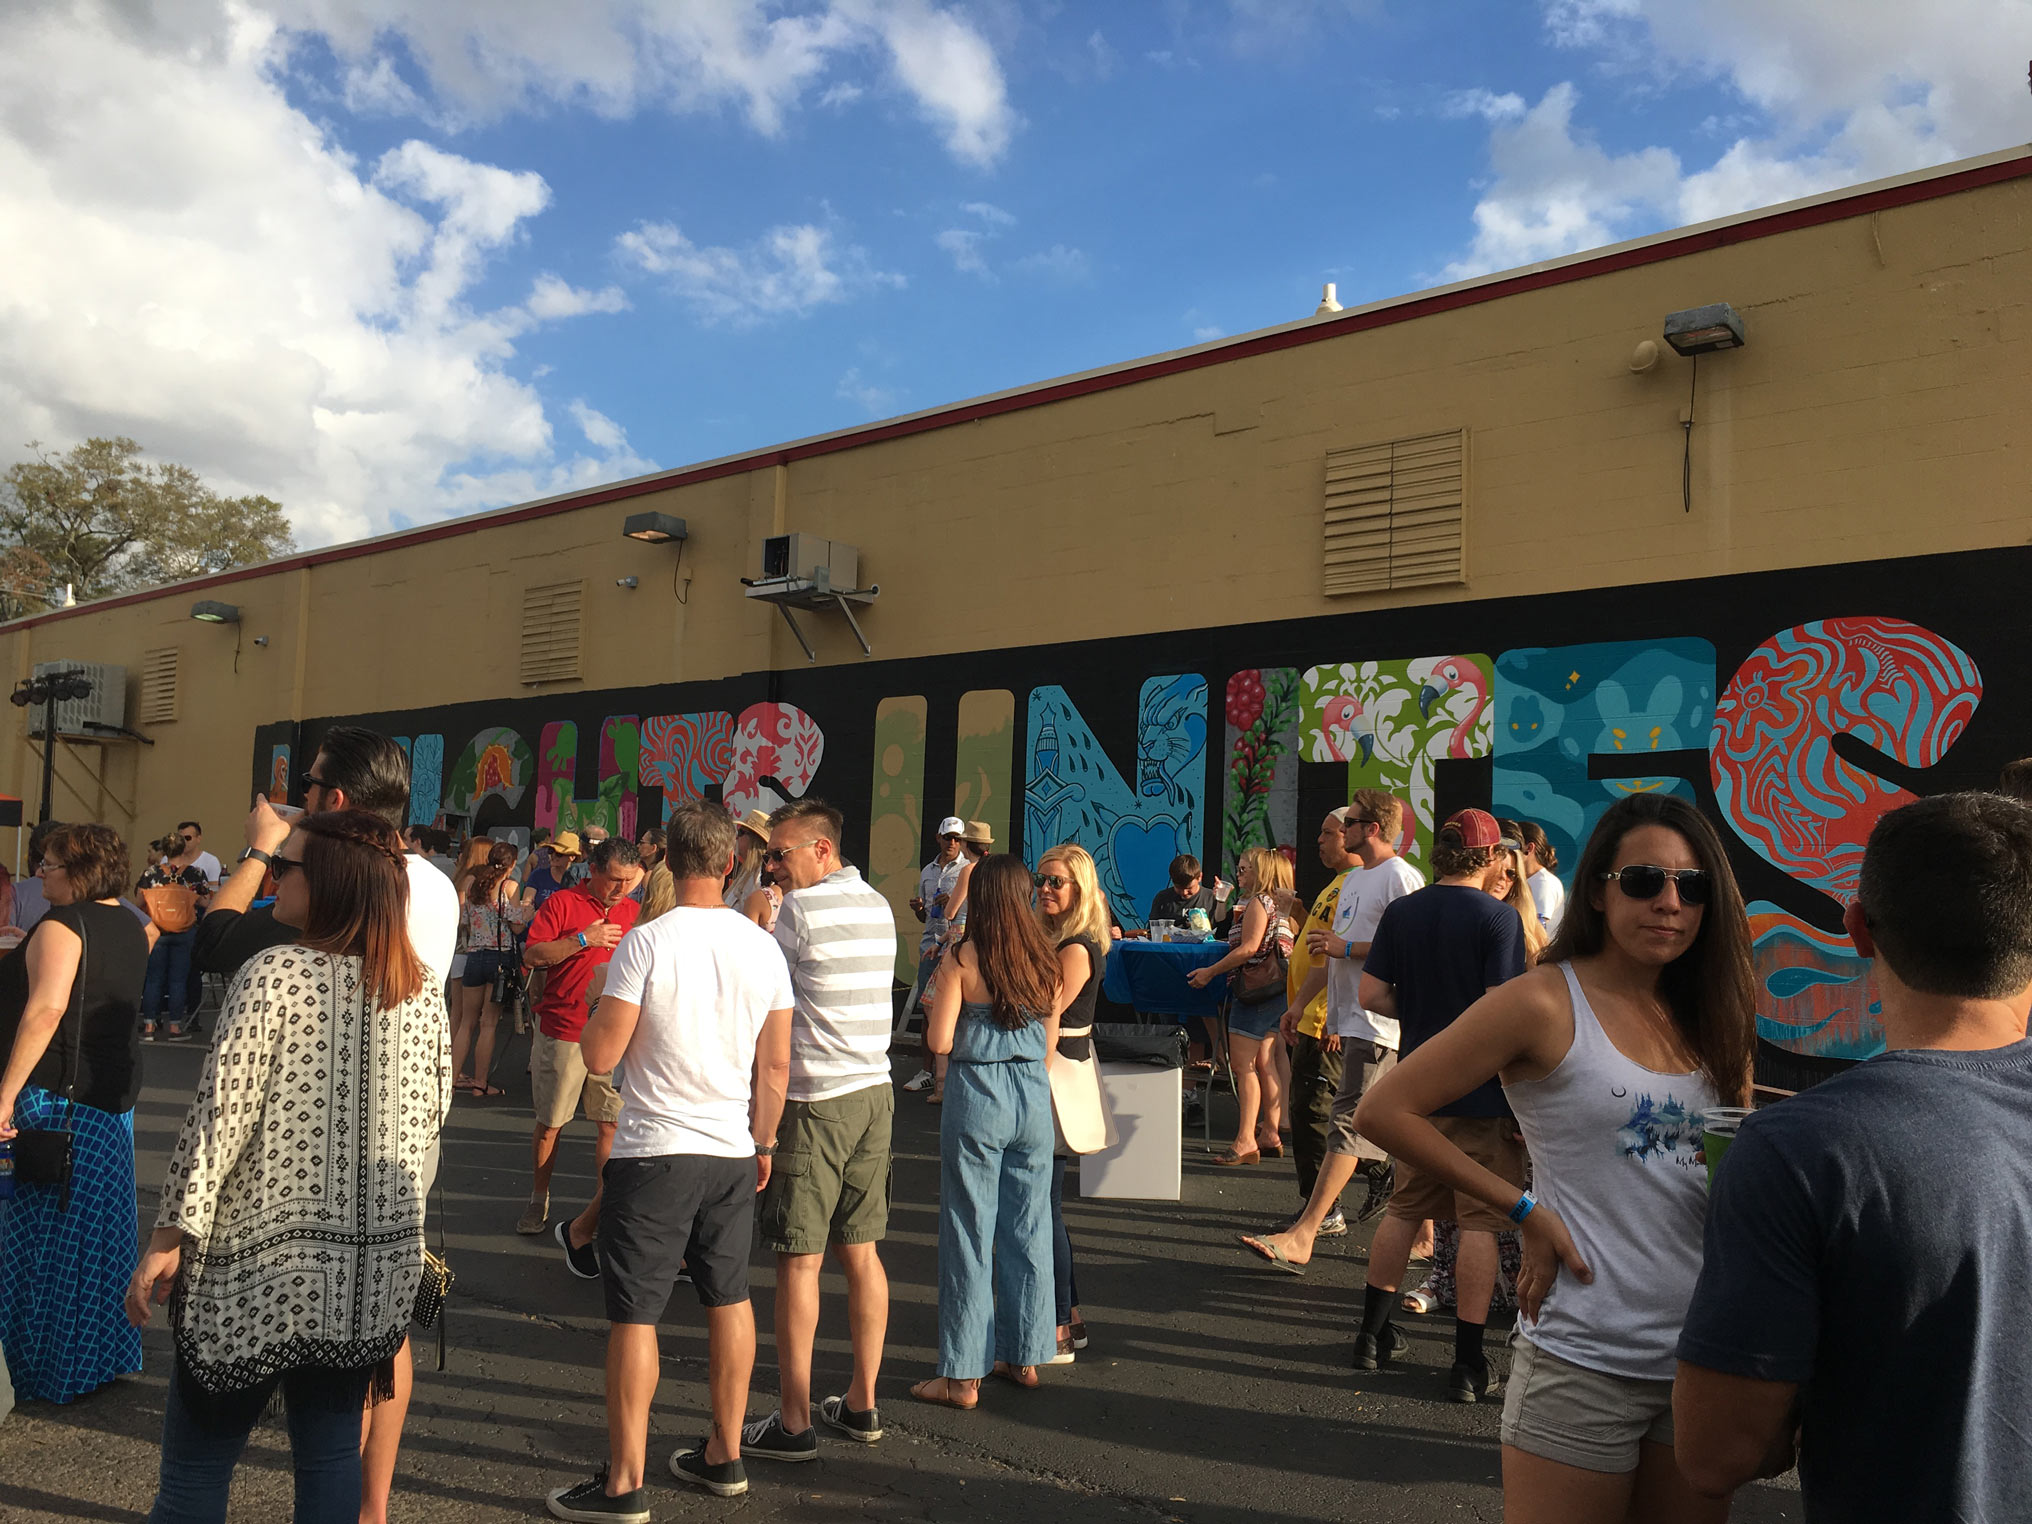 Heights Unites Mural - Brew Bus Brewing